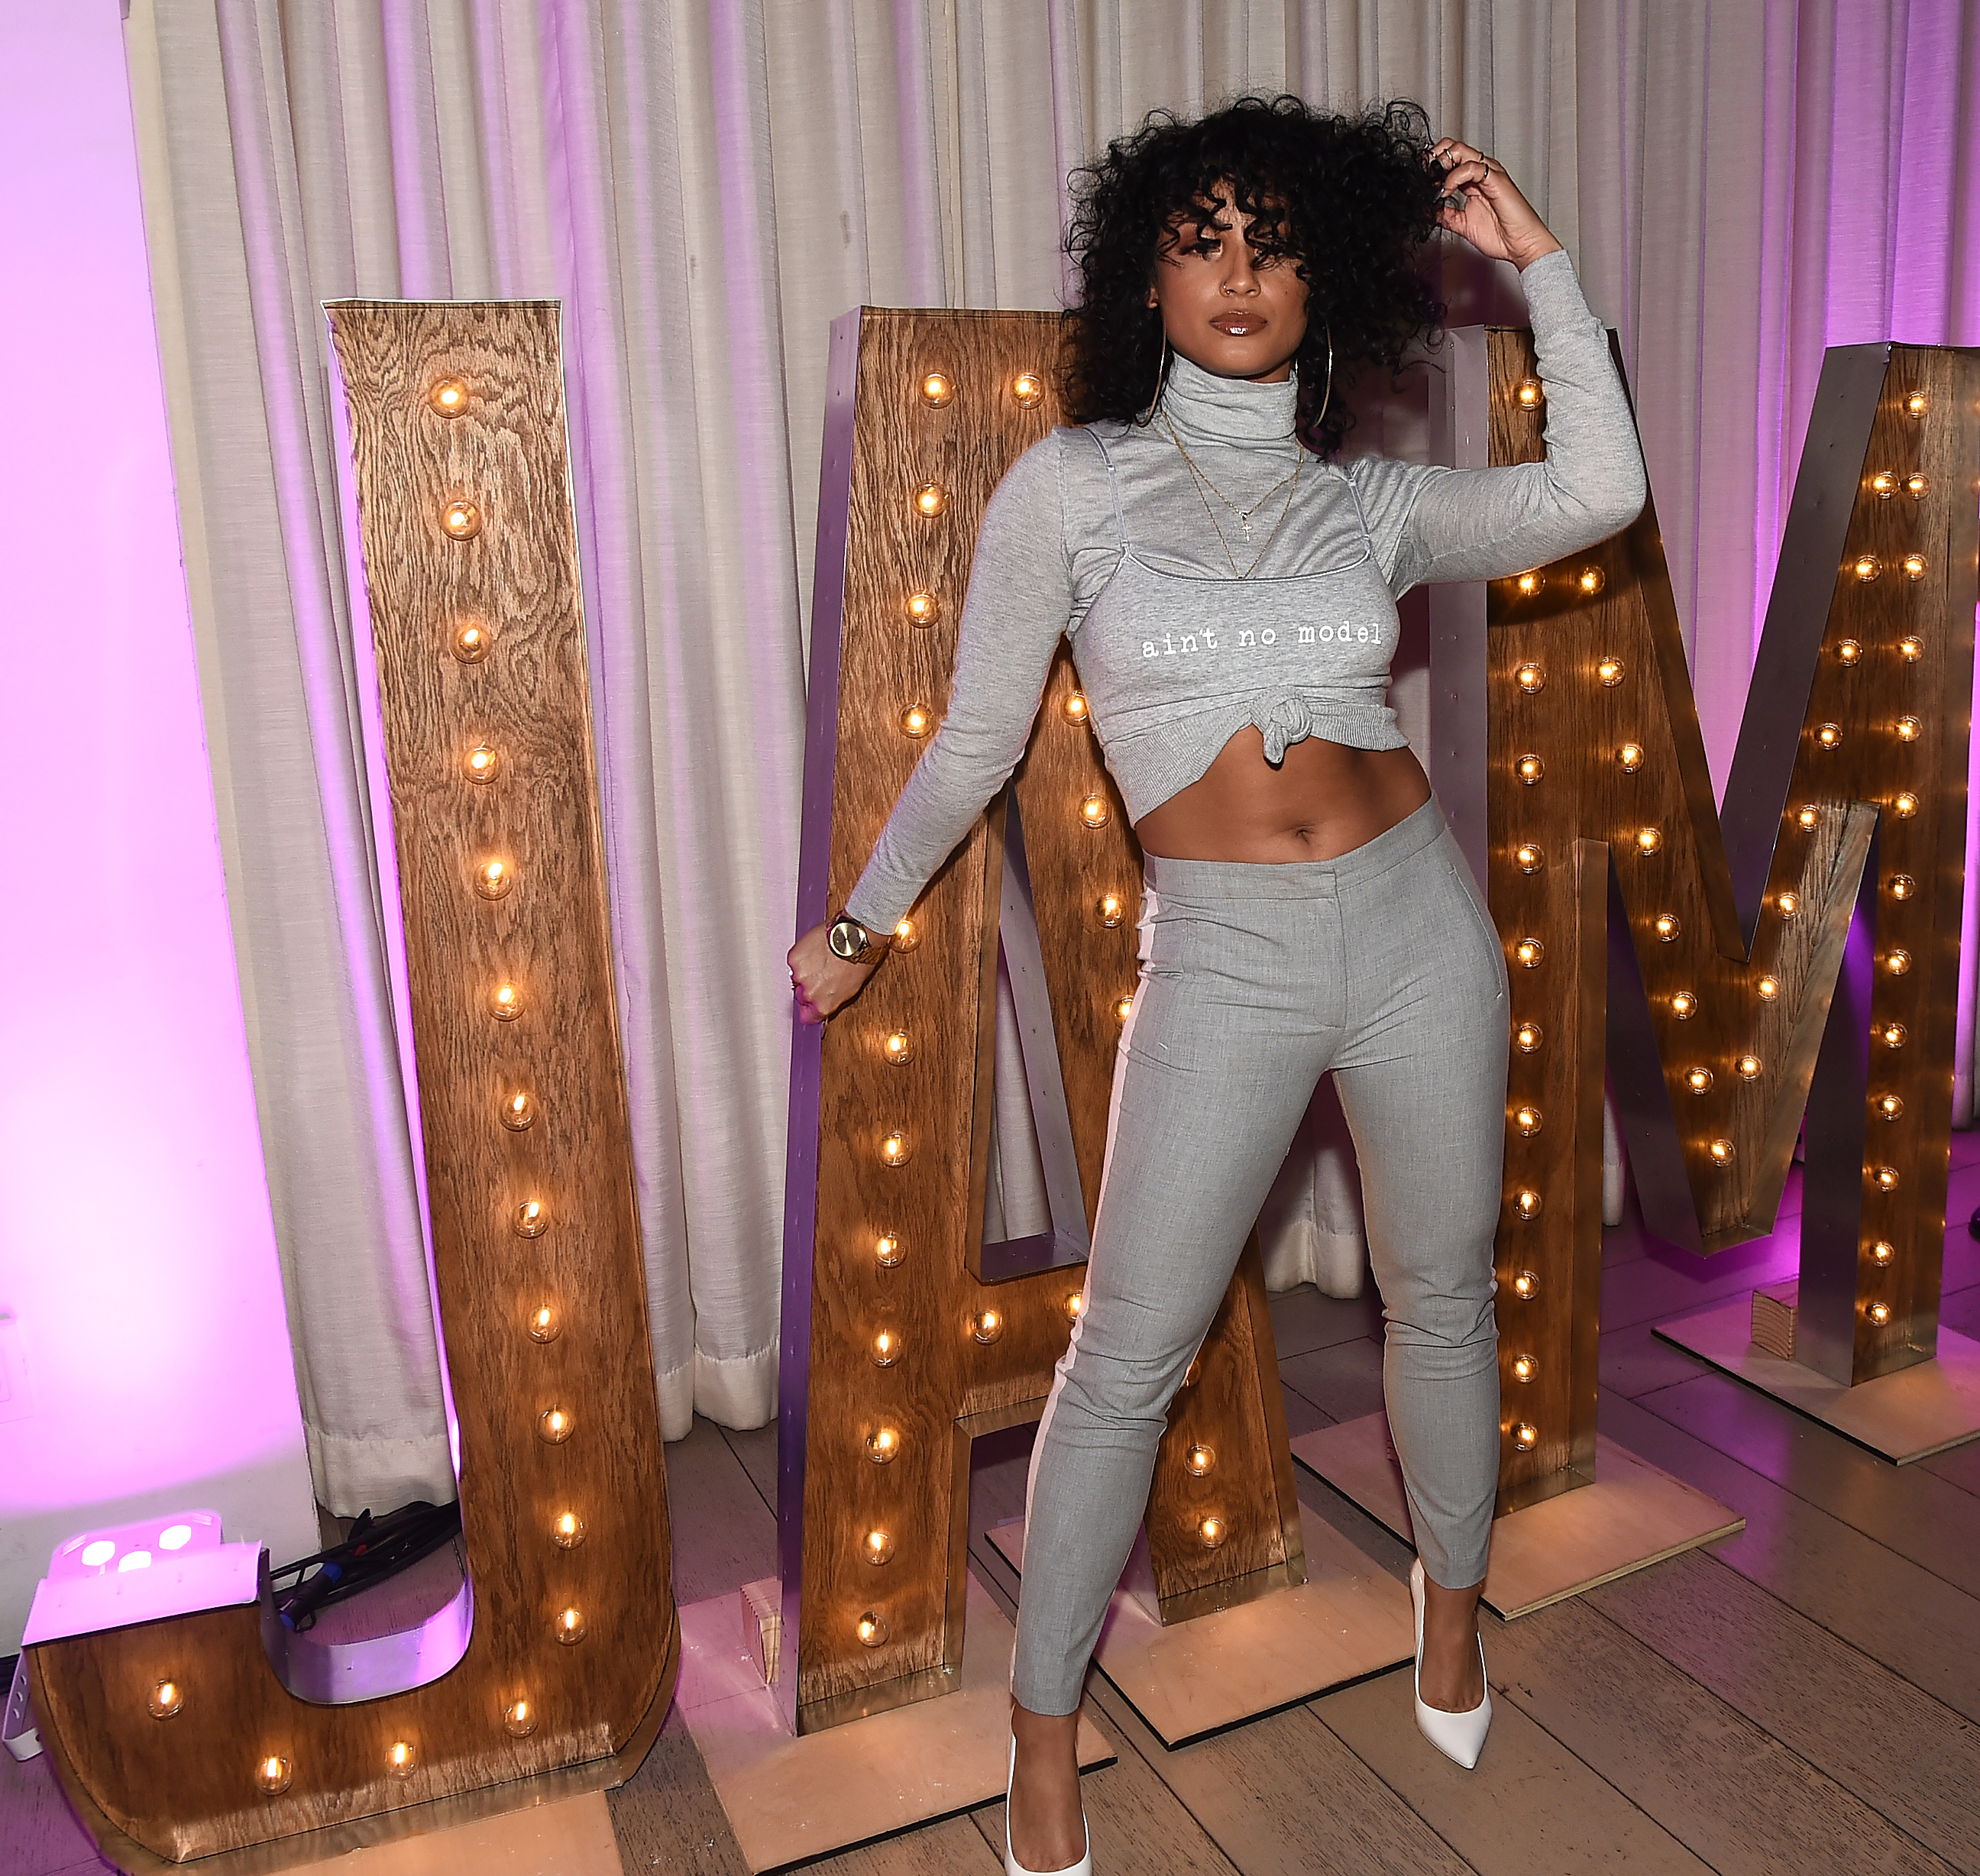 The 2017 Def Jam Holiday Party